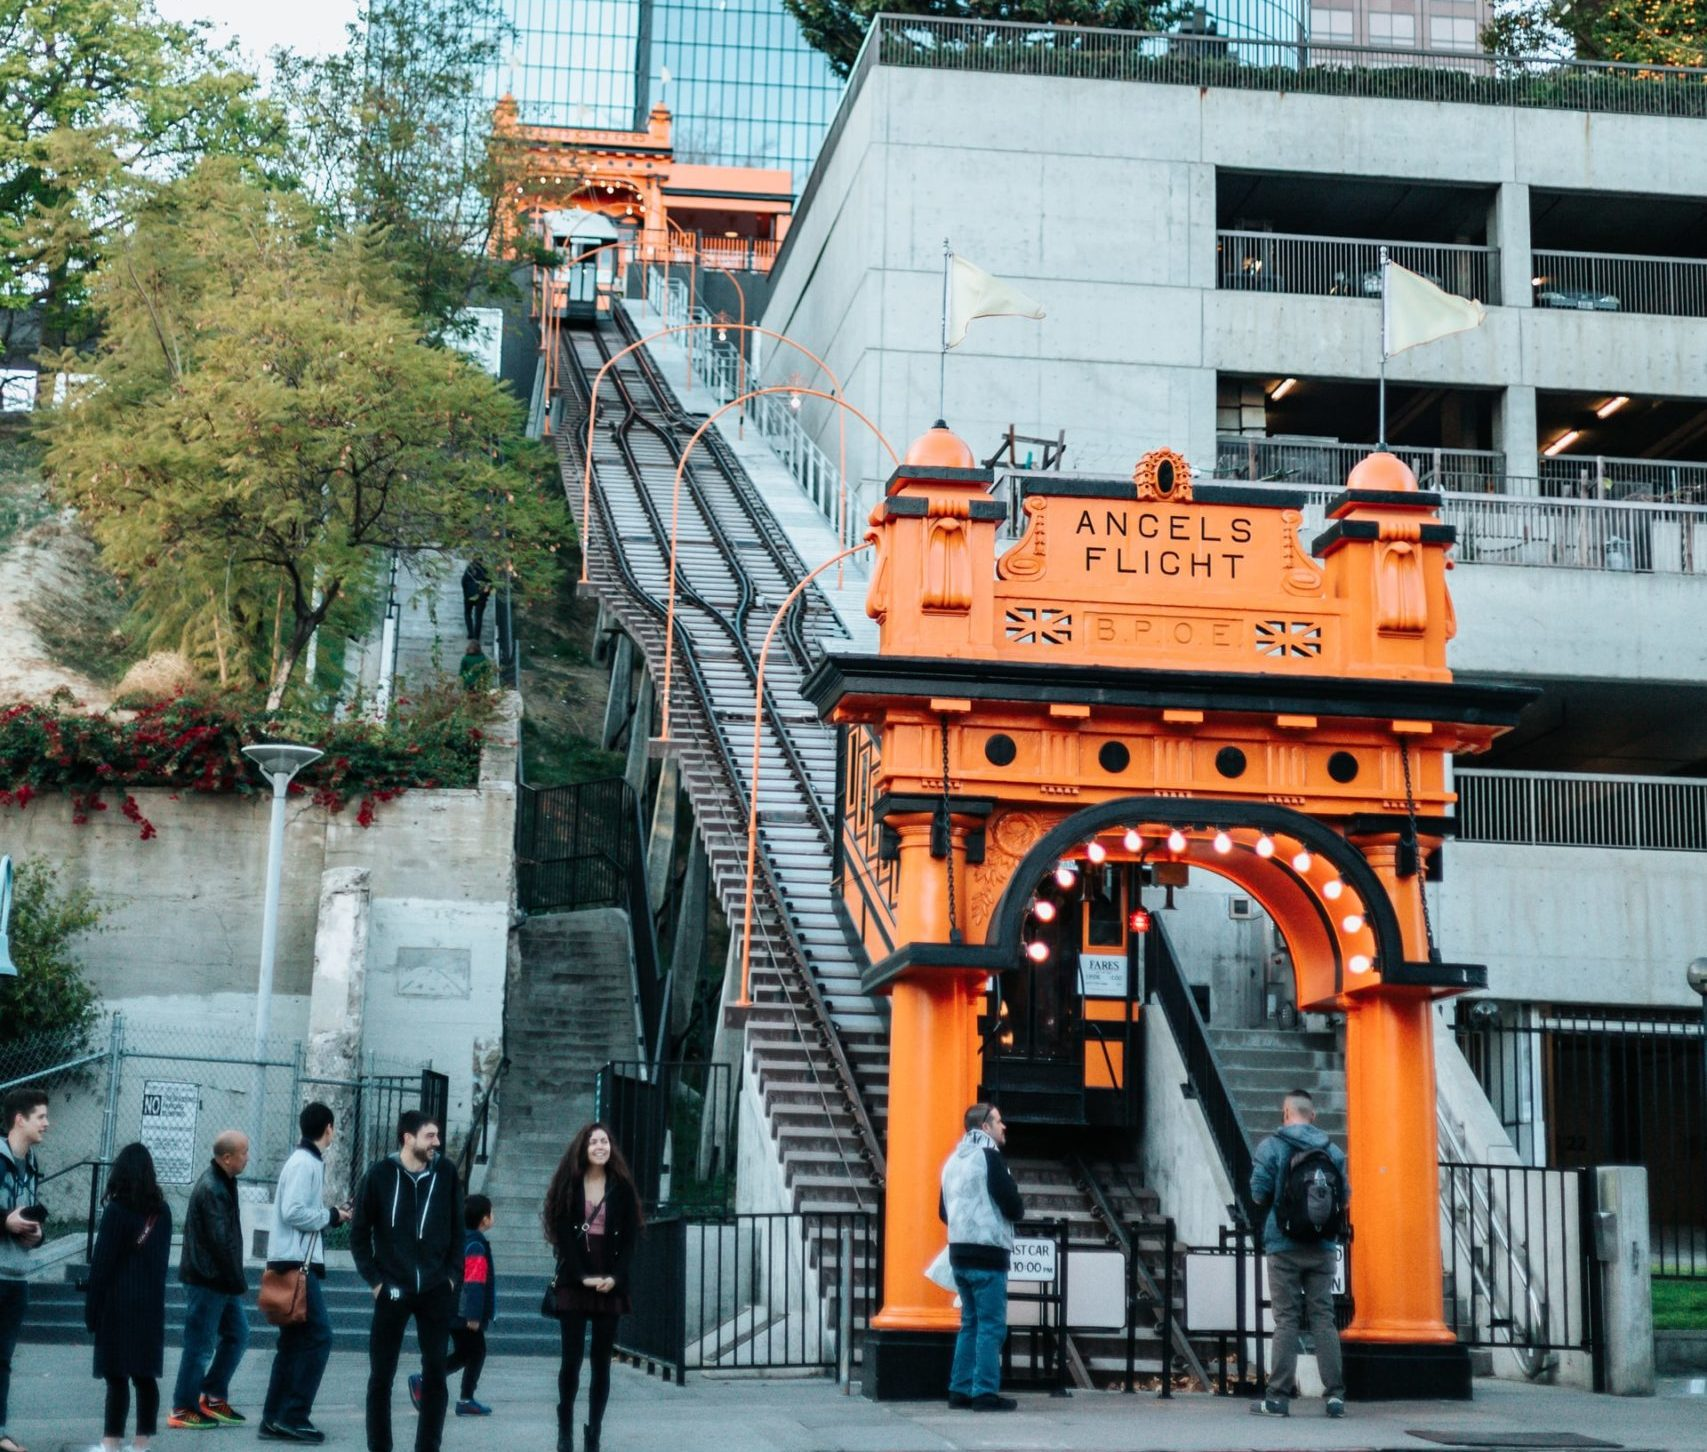 Waiting in line for a railway ride on Angels Flight in Los Angeles